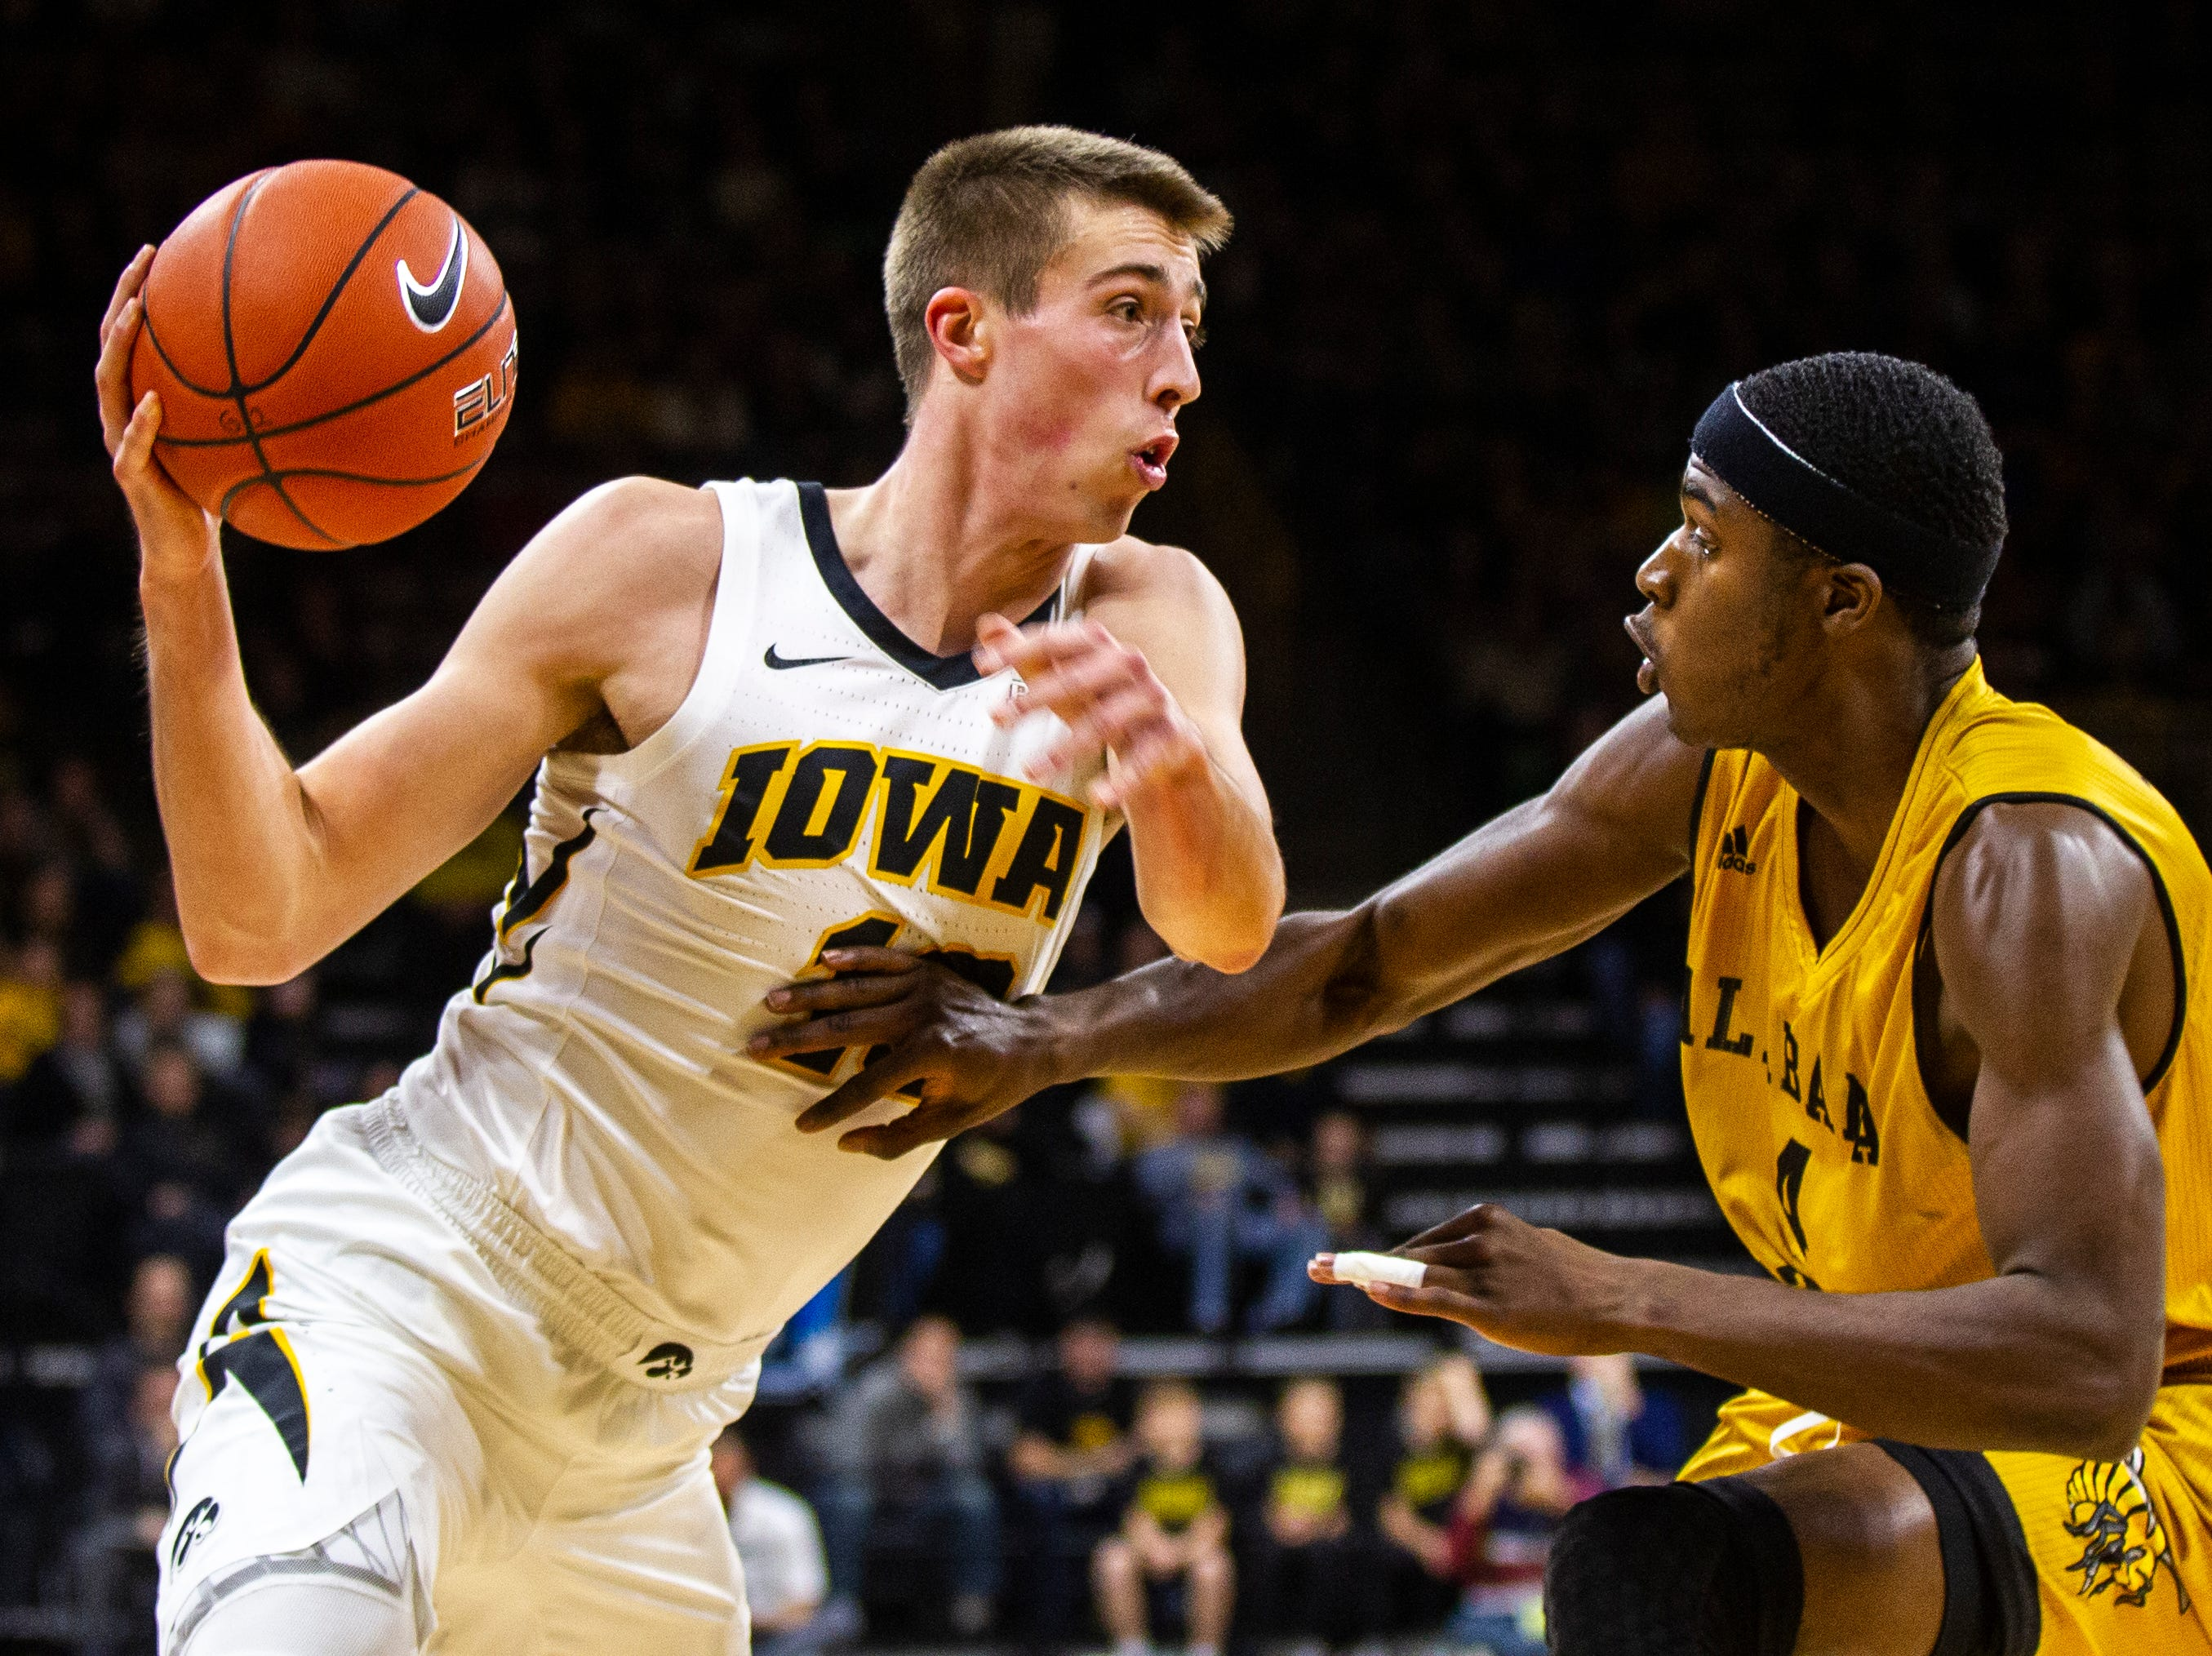 Iowa guard Joe Wieskamp (10) drives to the hoop past Alabama State's Leon Daniels (4) during an NCAA men's basketball game on Wednesday, Nov. 21, 2018, at Carver-Hawkeye Arena in Iowa City.